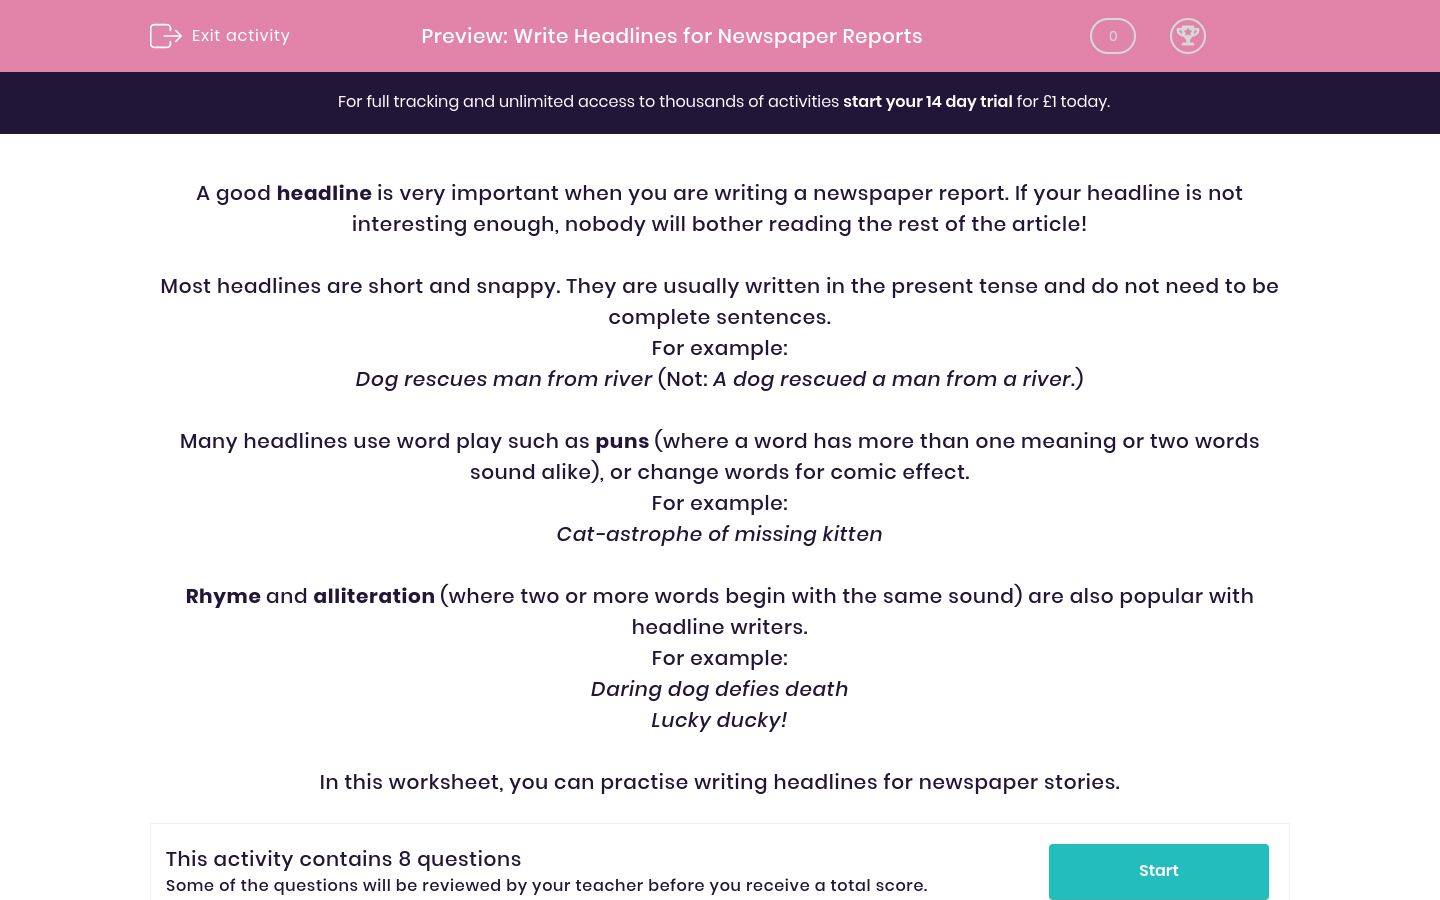 'Write Headlines for Newspaper Reports' worksheet